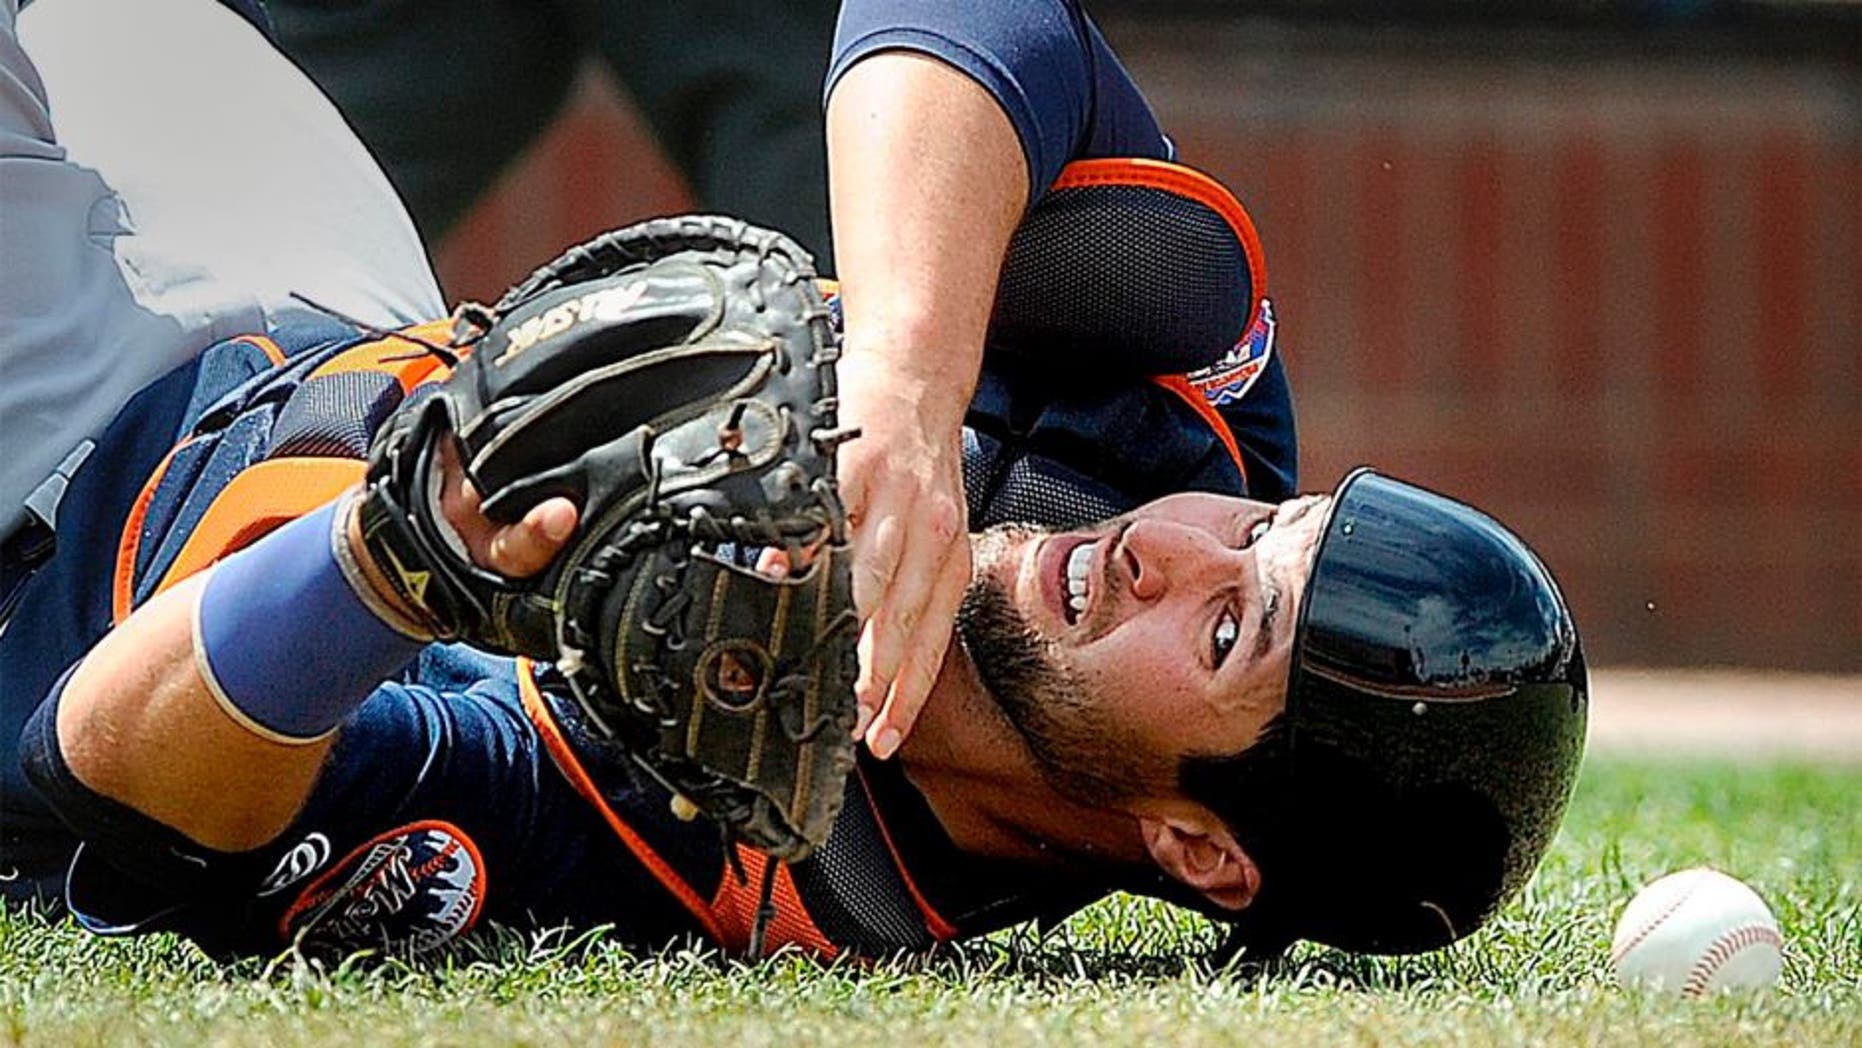 PORTLAND, ME - MAY 14: Colton Plaia of the Binghamton Mets looks back for the baseball after falling to the ground and failing to make a catch on a pop up behind home plate Saturday, May 14, 2016. (Photo by Gabe Souza/Portland Press Herald via Getty Images)